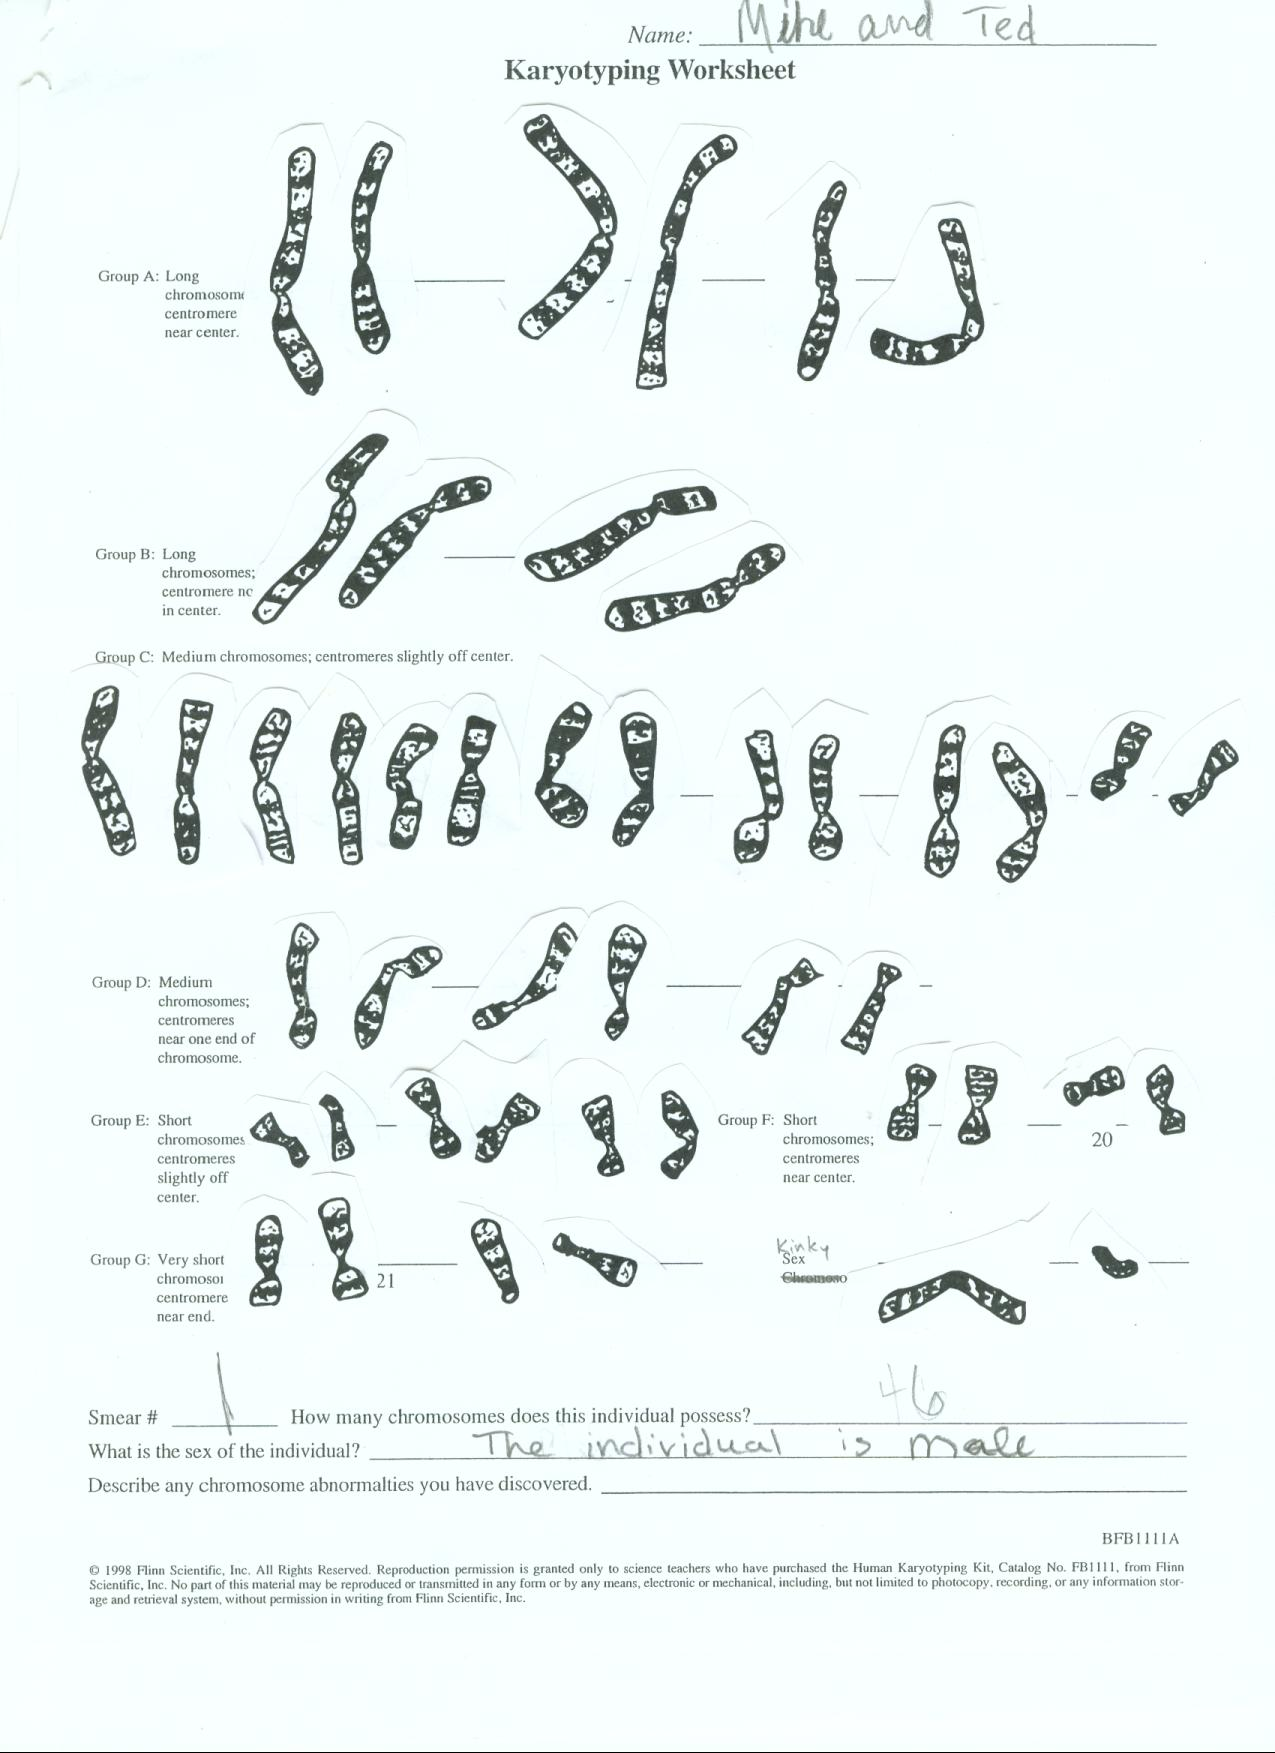 Mmapbio Public Karyotype Worksheet